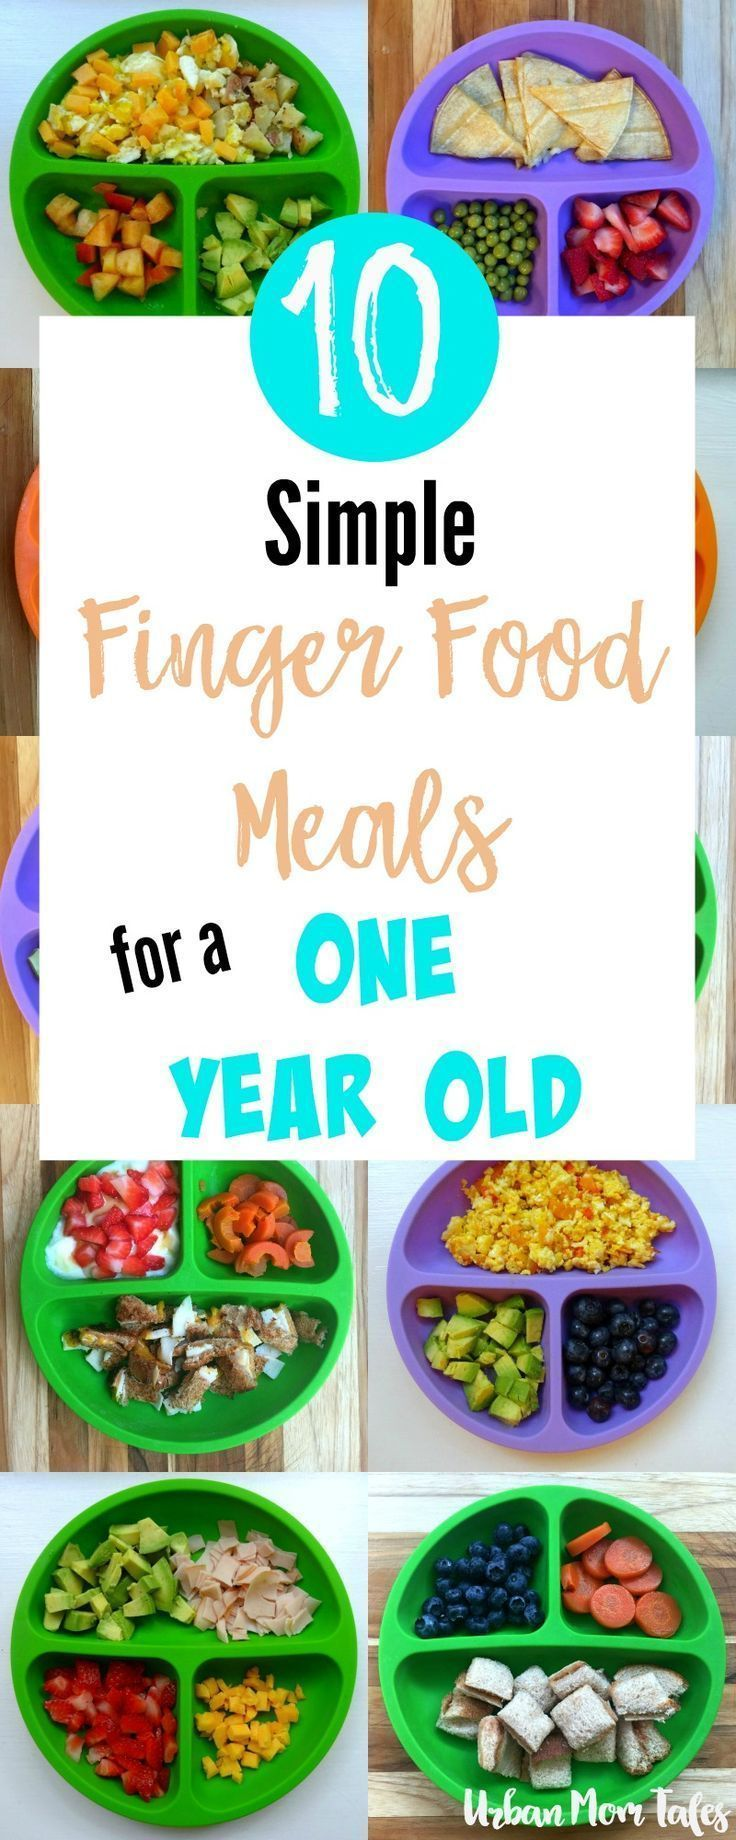 Simple Finger Food Meals For A One Year Old When You Dont Have Time